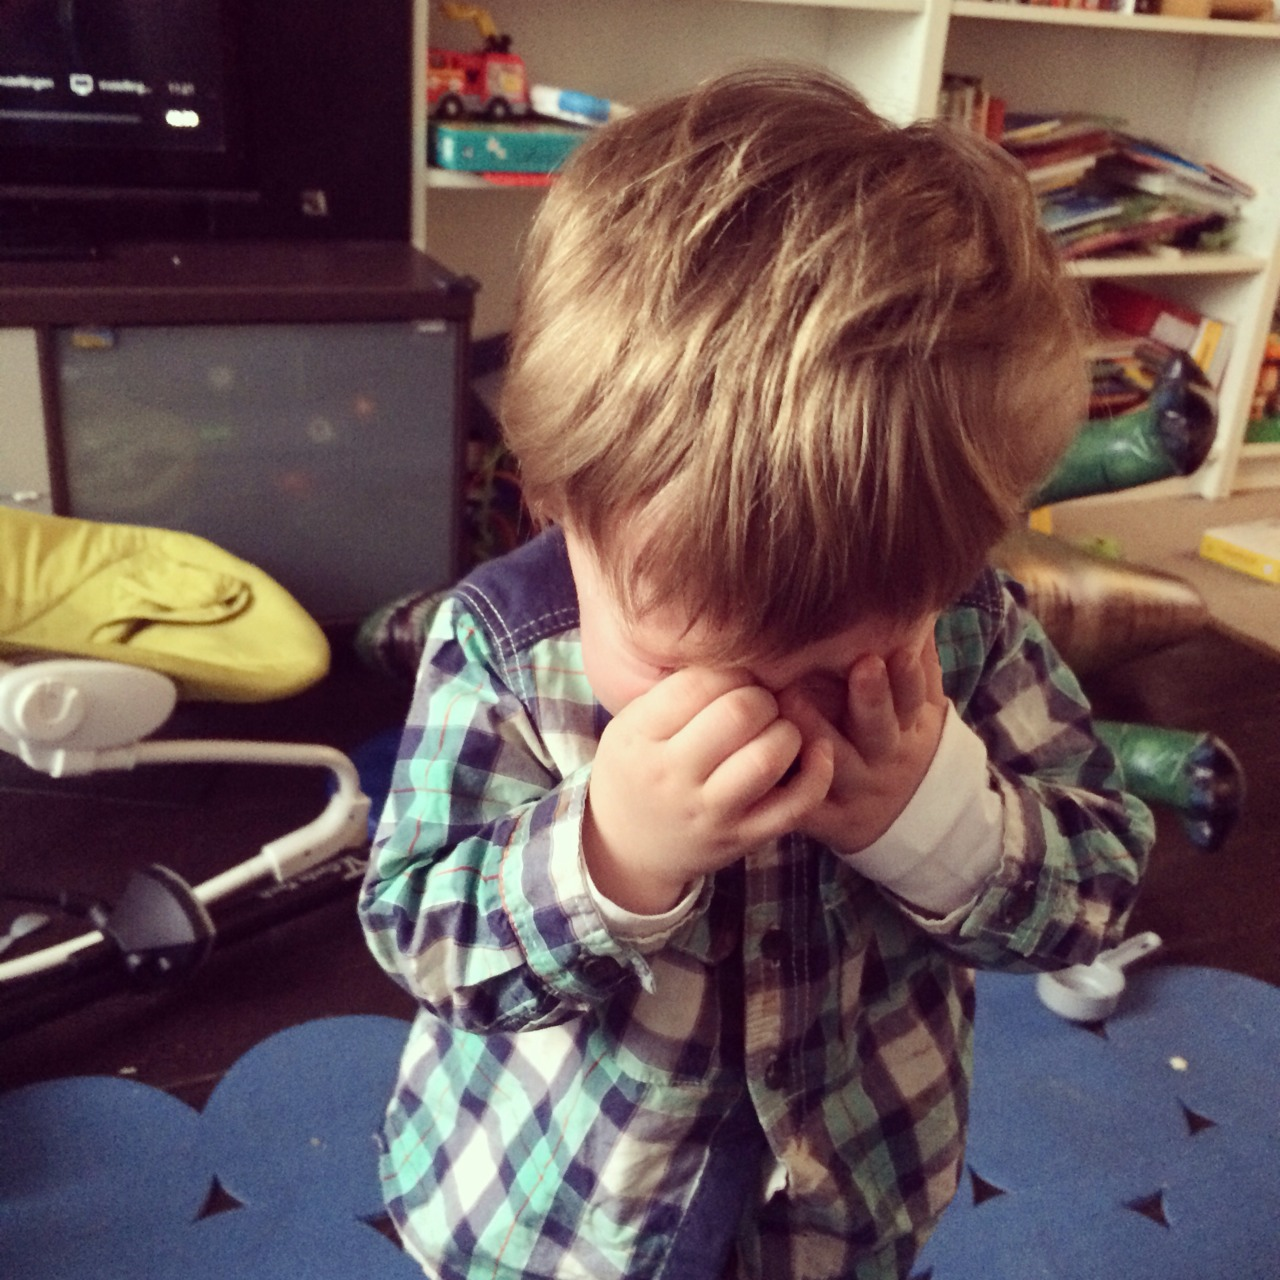 reasons-my-kid-is-crying-01